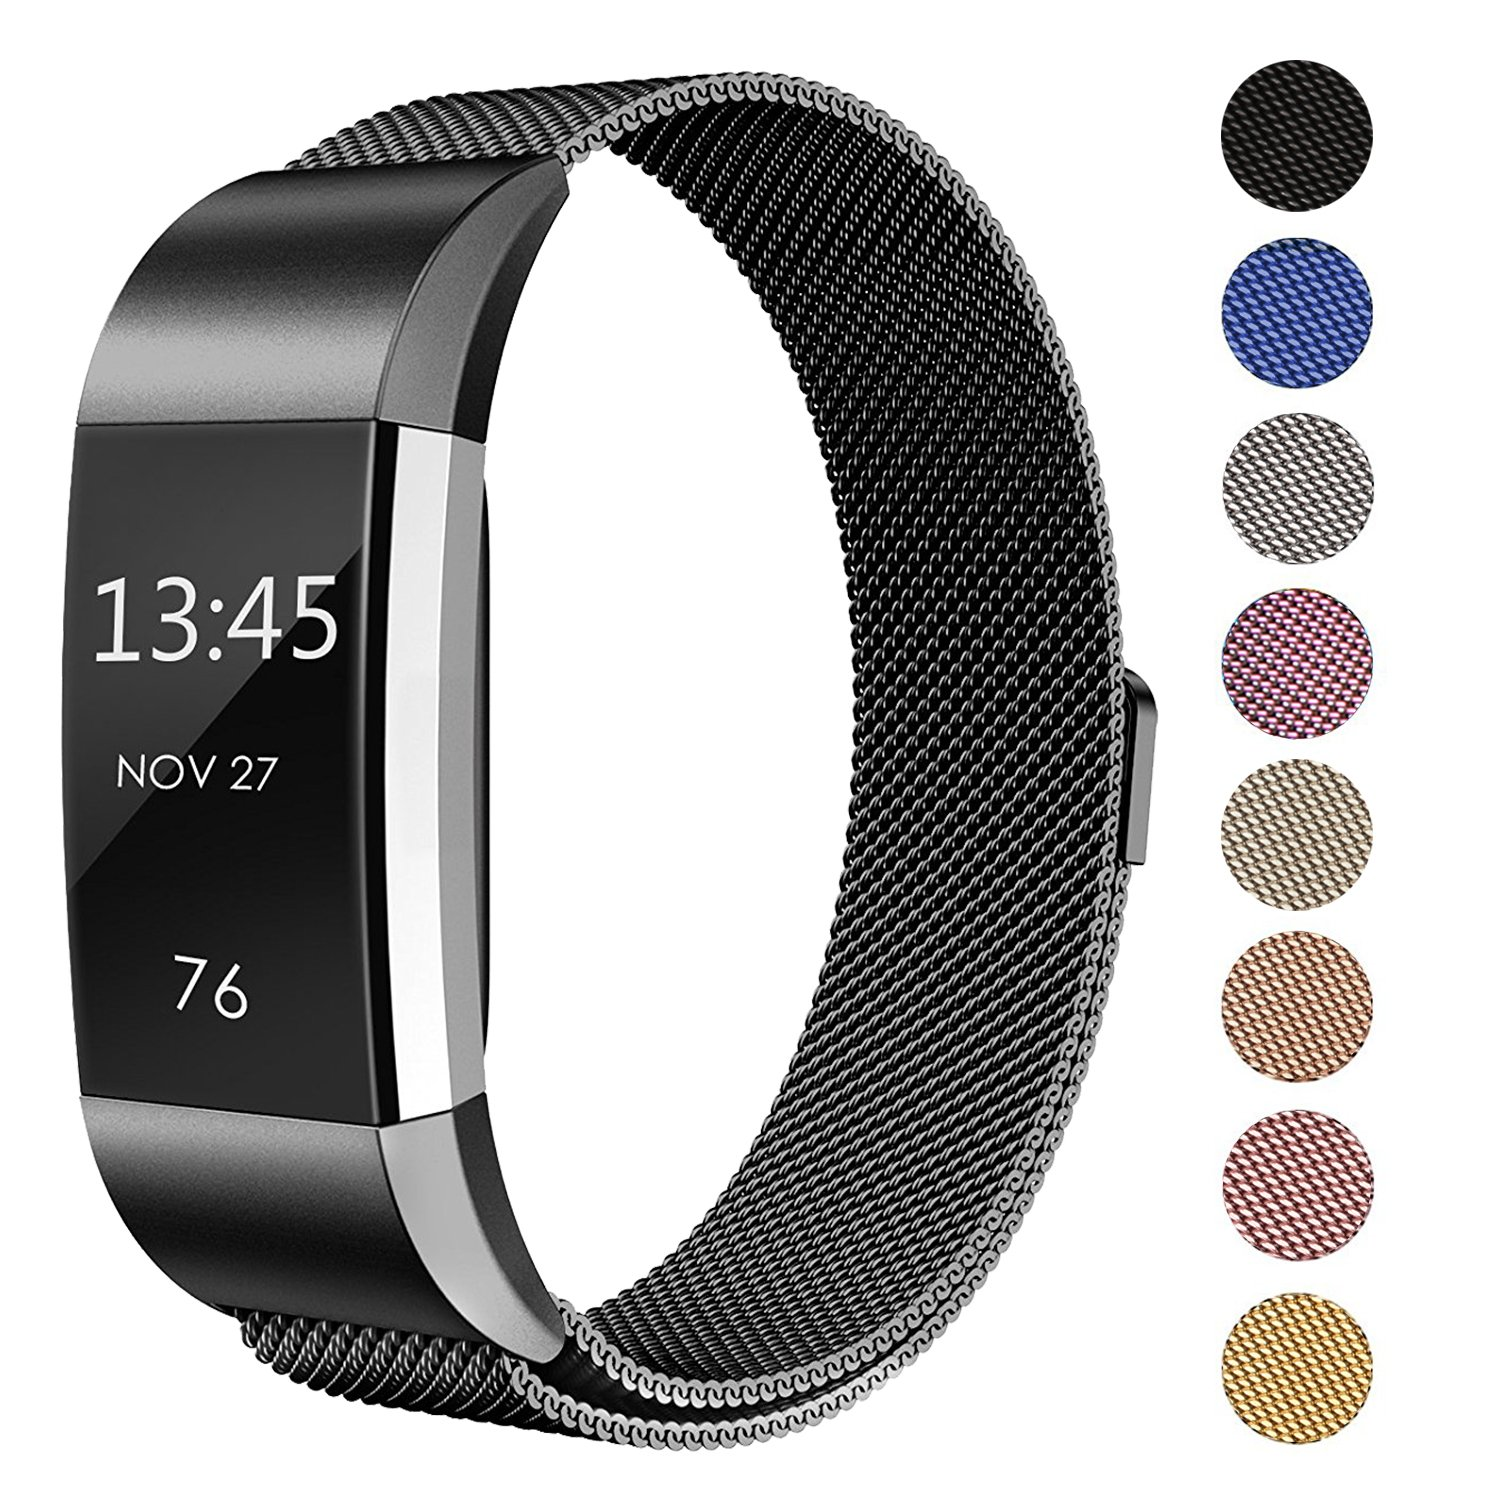 "Swees For Fitbit Charge 2 Bands Metal Small & Large (5.5"" - 9.9""), Milanese Stainless Steel Magnetic Replacement Wristband for Fitbit Charge 2 Women Men, Silver, Champagne, Rose Gold, Black, Colorful"